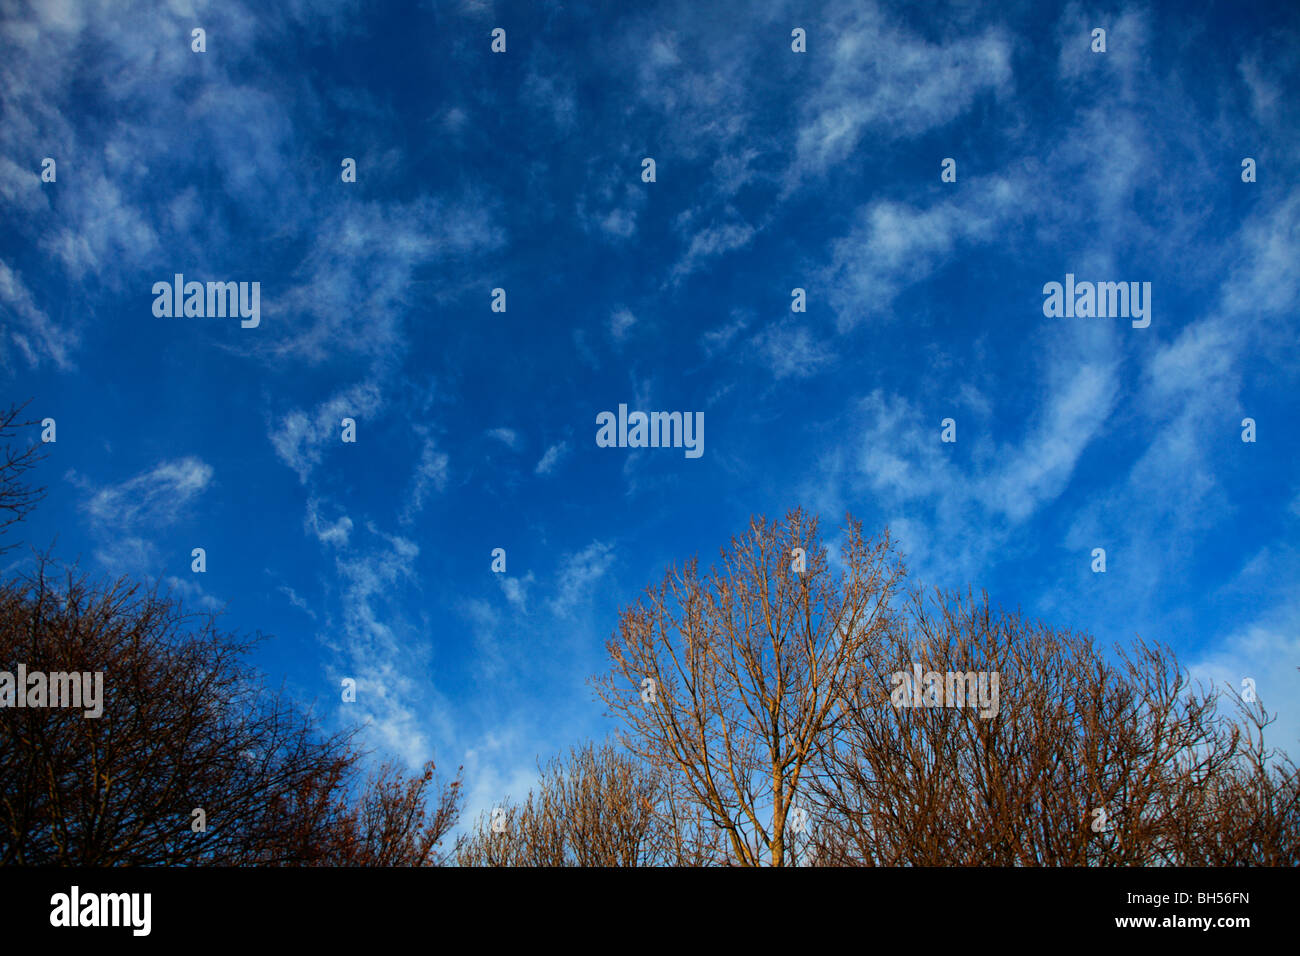 White Wispy Cirrus High clouds deep blue sky - Stock Image